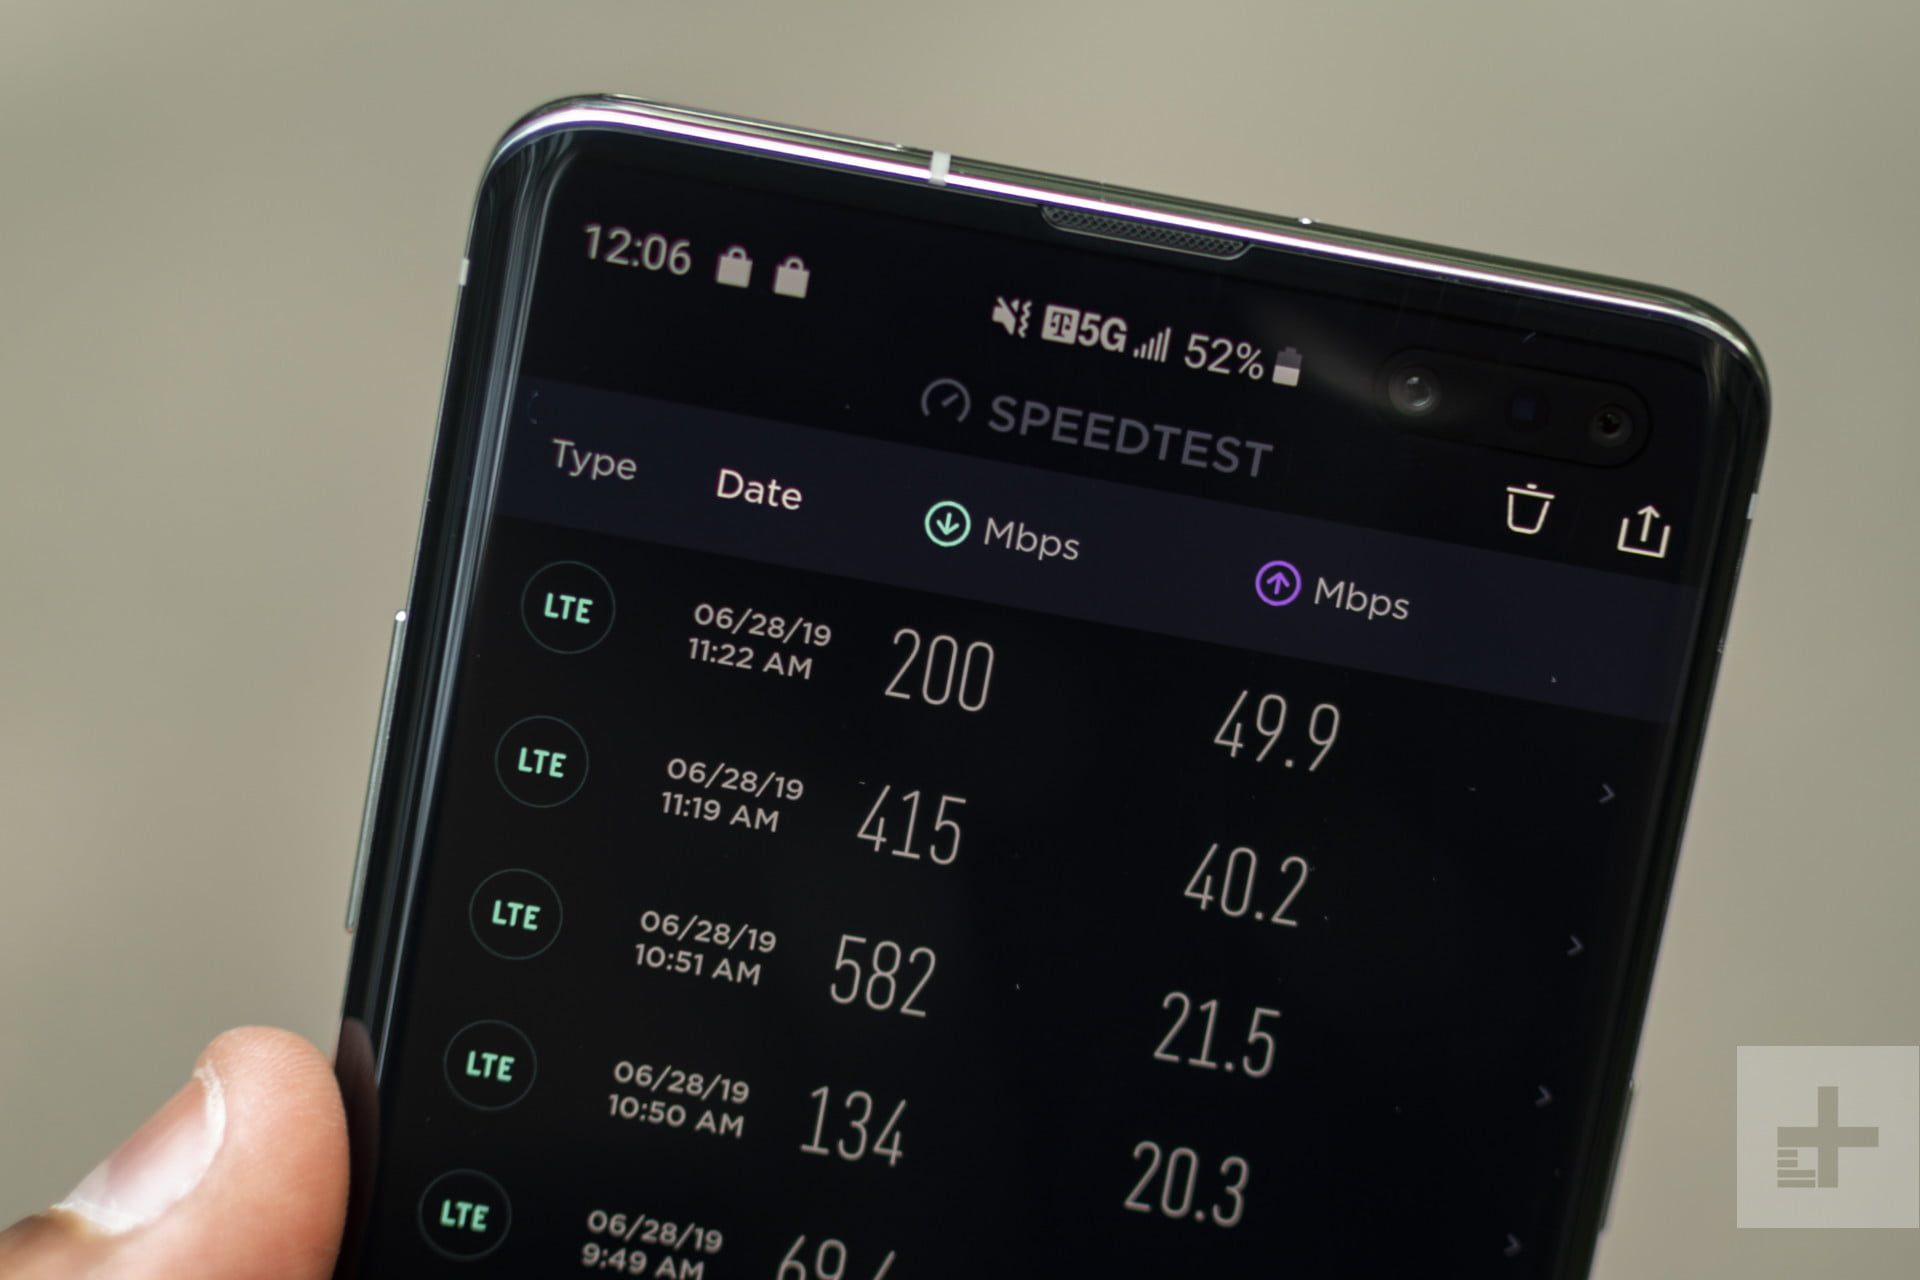 Testing T-Mobile's 5G speeds in New York City With The